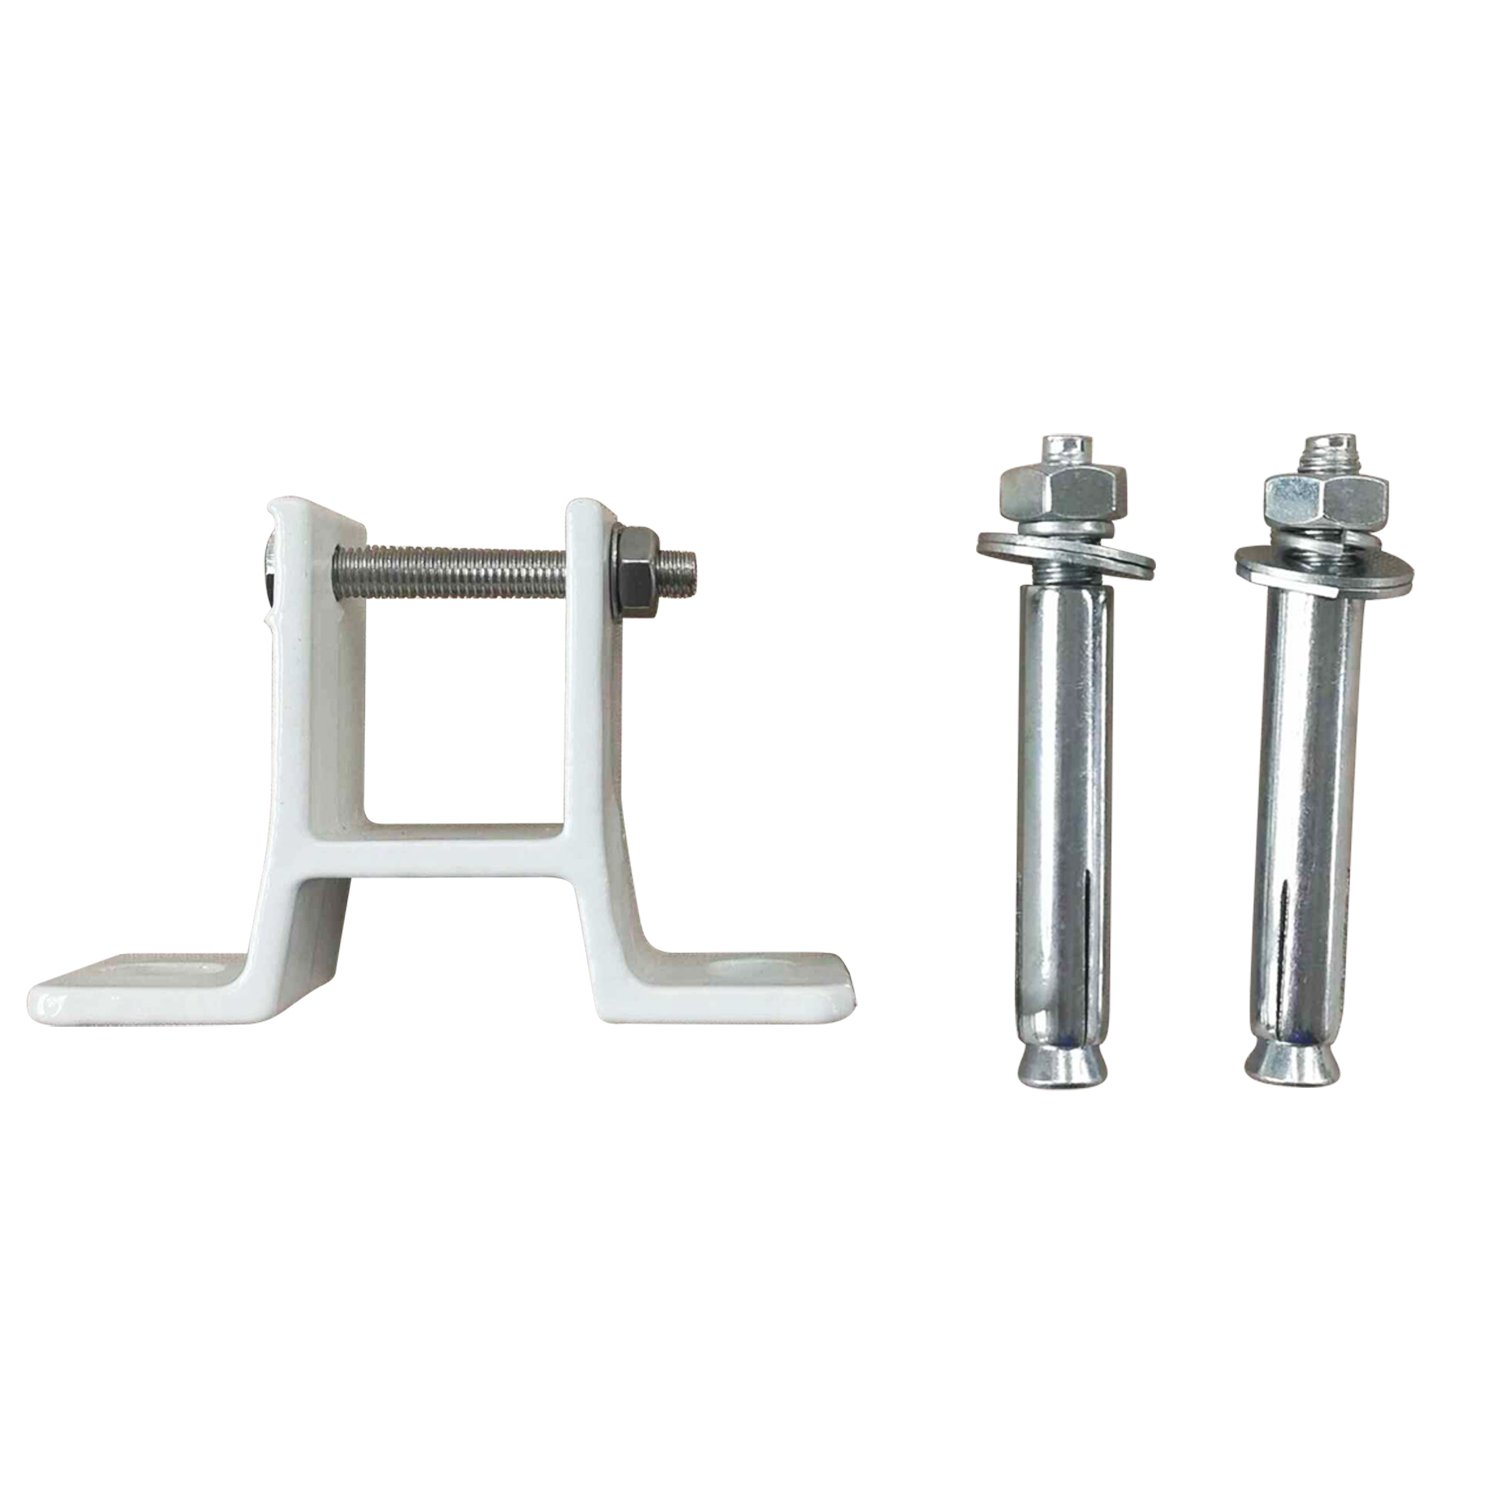 Green Bay Greenbay Standard Awning Wall Bracket Fit 35mm Square Torsion Bar White Manufactured for Greenbay